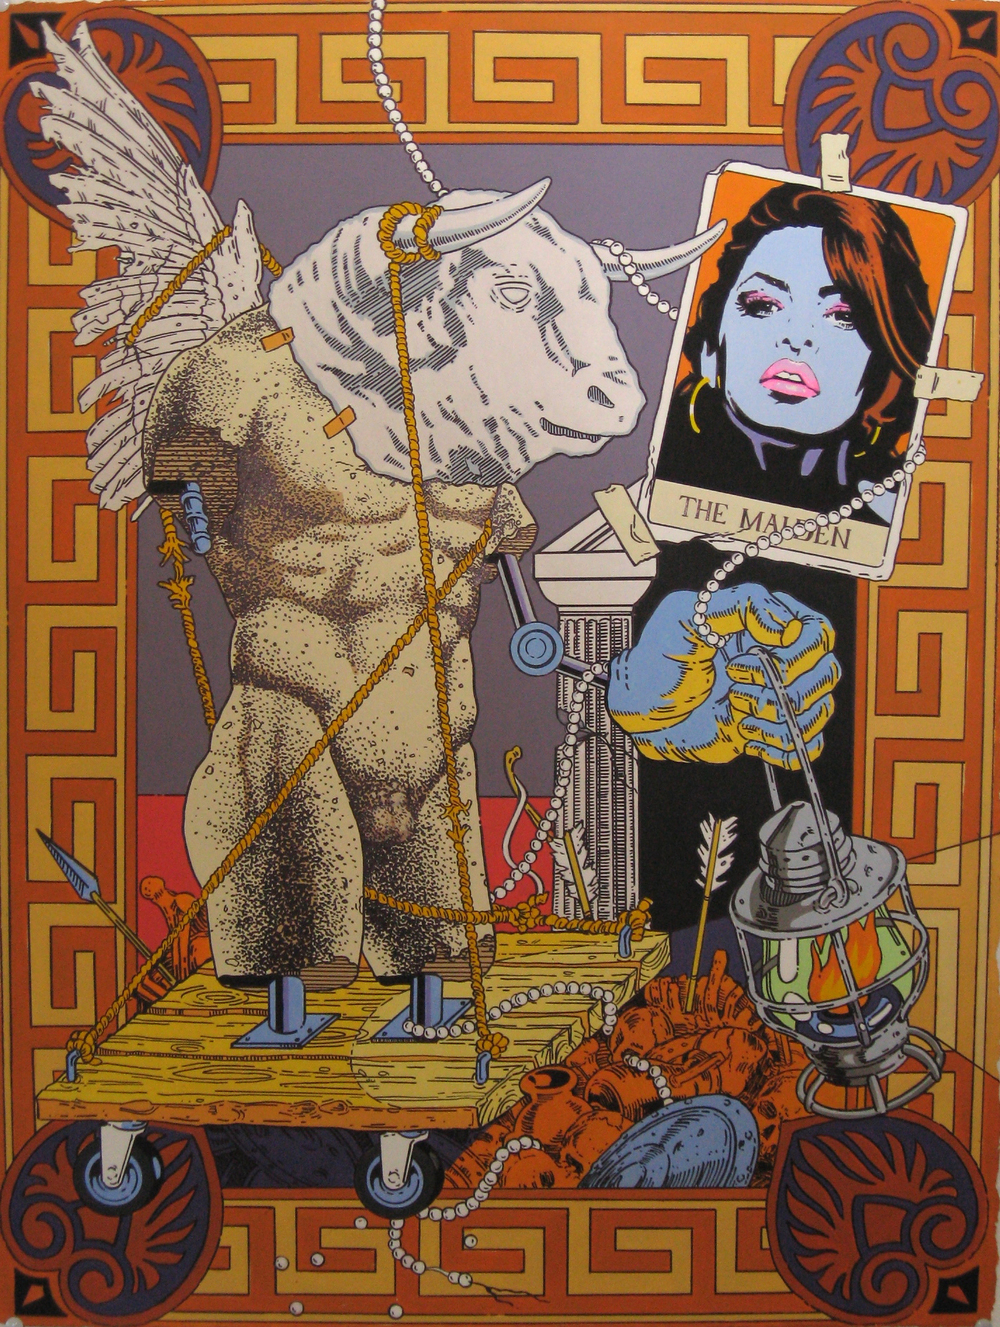 The Minotaur and Maiden_22x30in_mixed media on 300 lb watercolor paper_retouched_lg.jpg